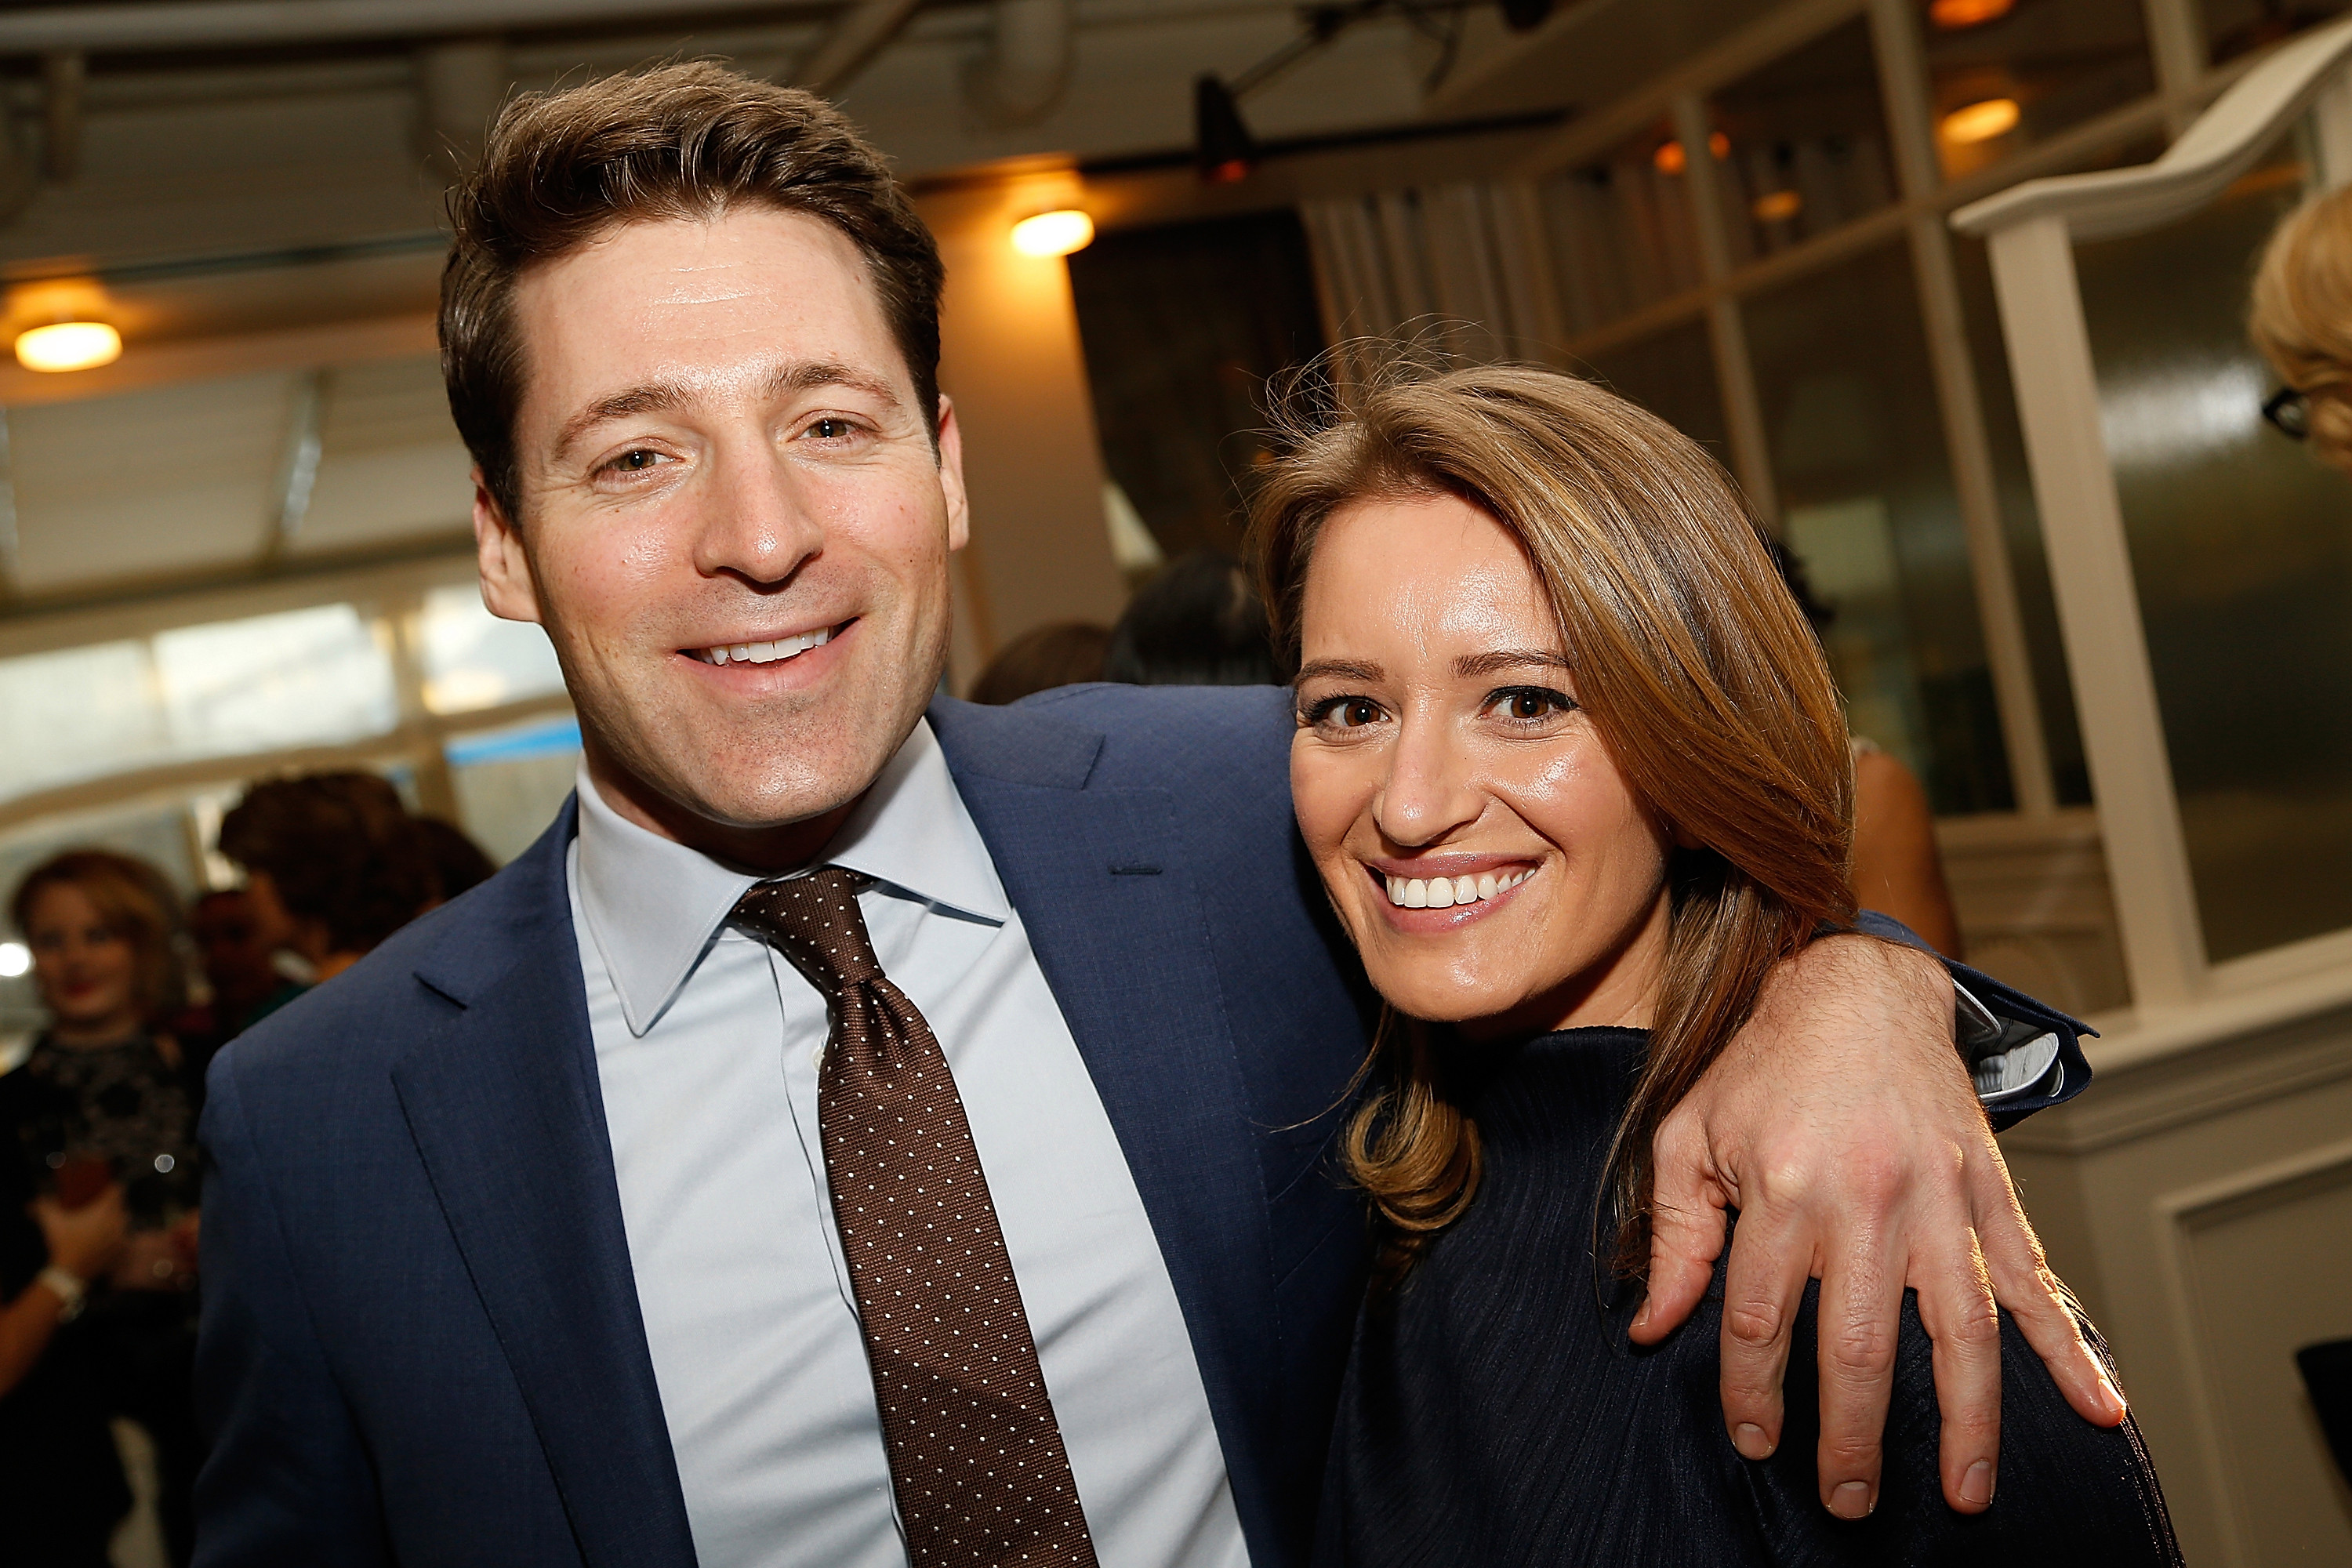 Tony Dokoupil with his partner Katy Tur